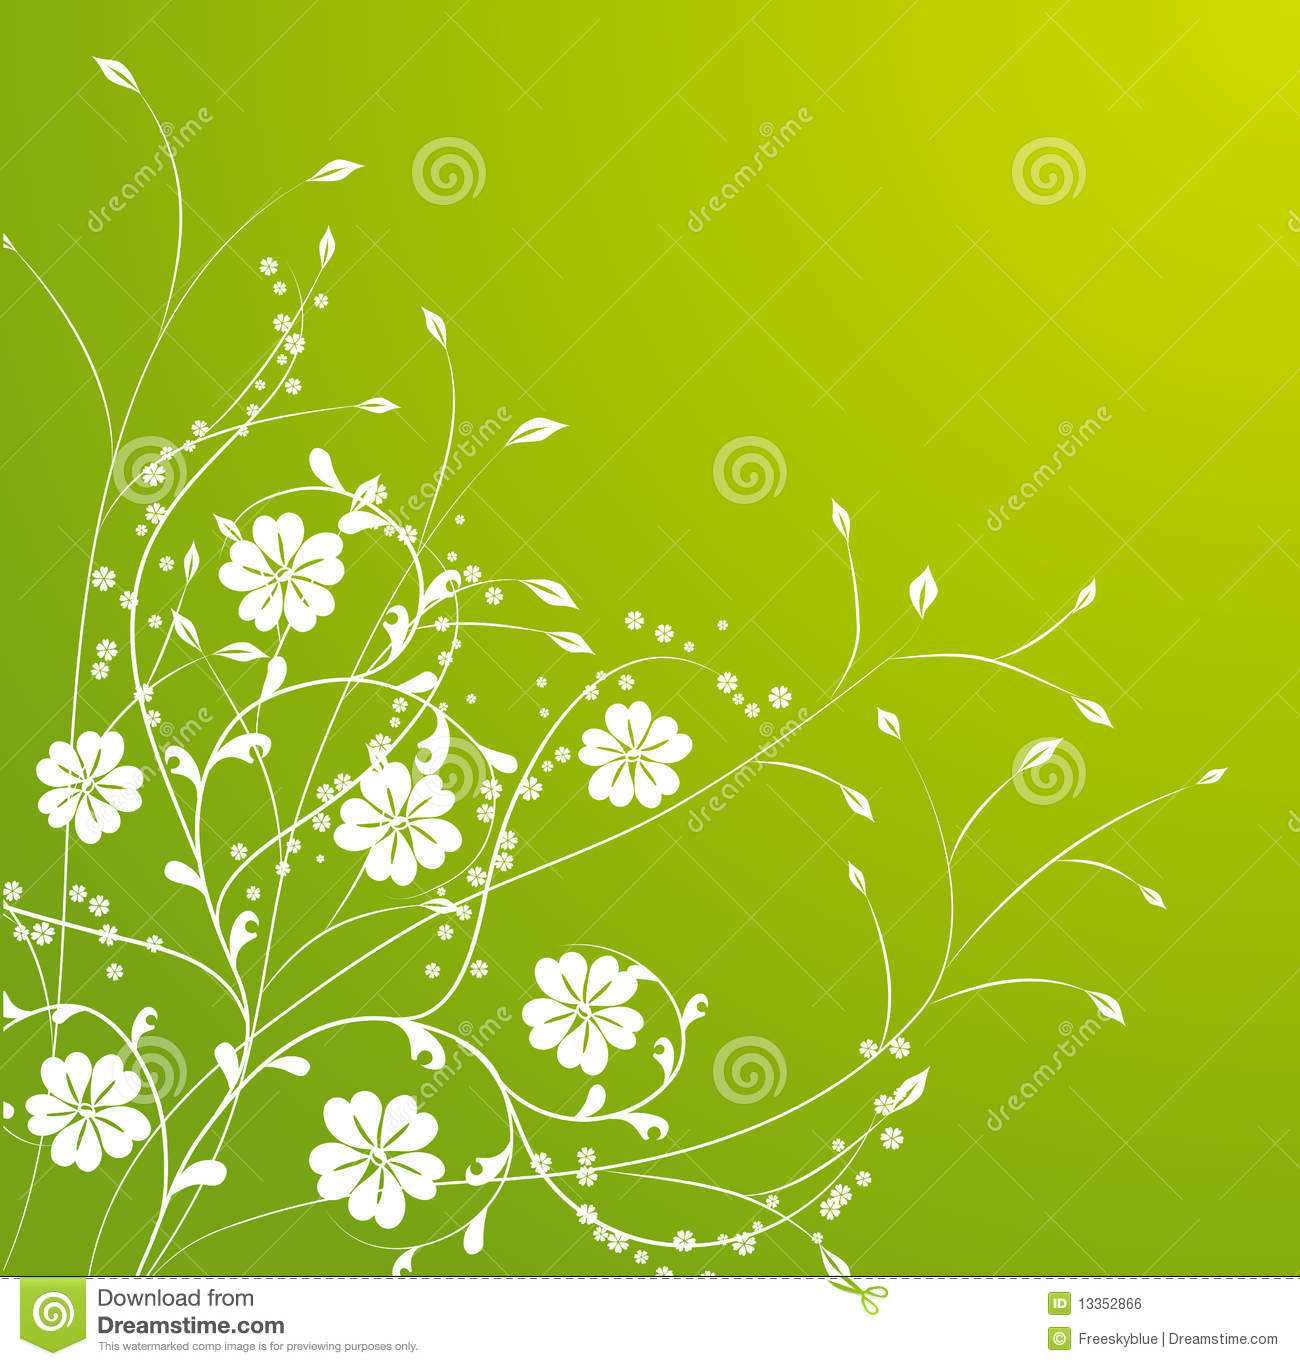 Green and white floral pattern - photo#18